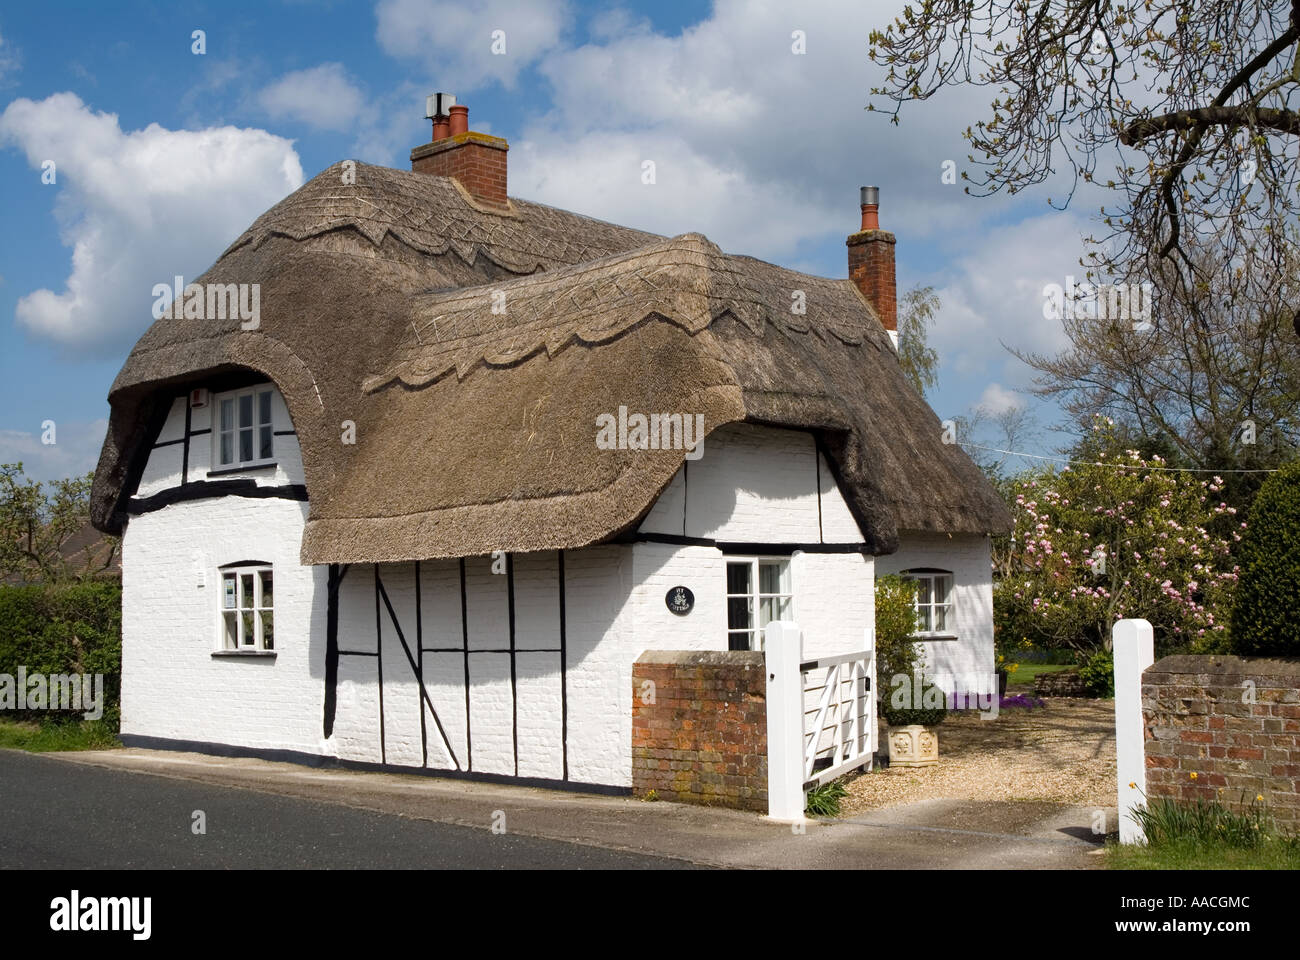 A Typical Traditional English Country Thatched House